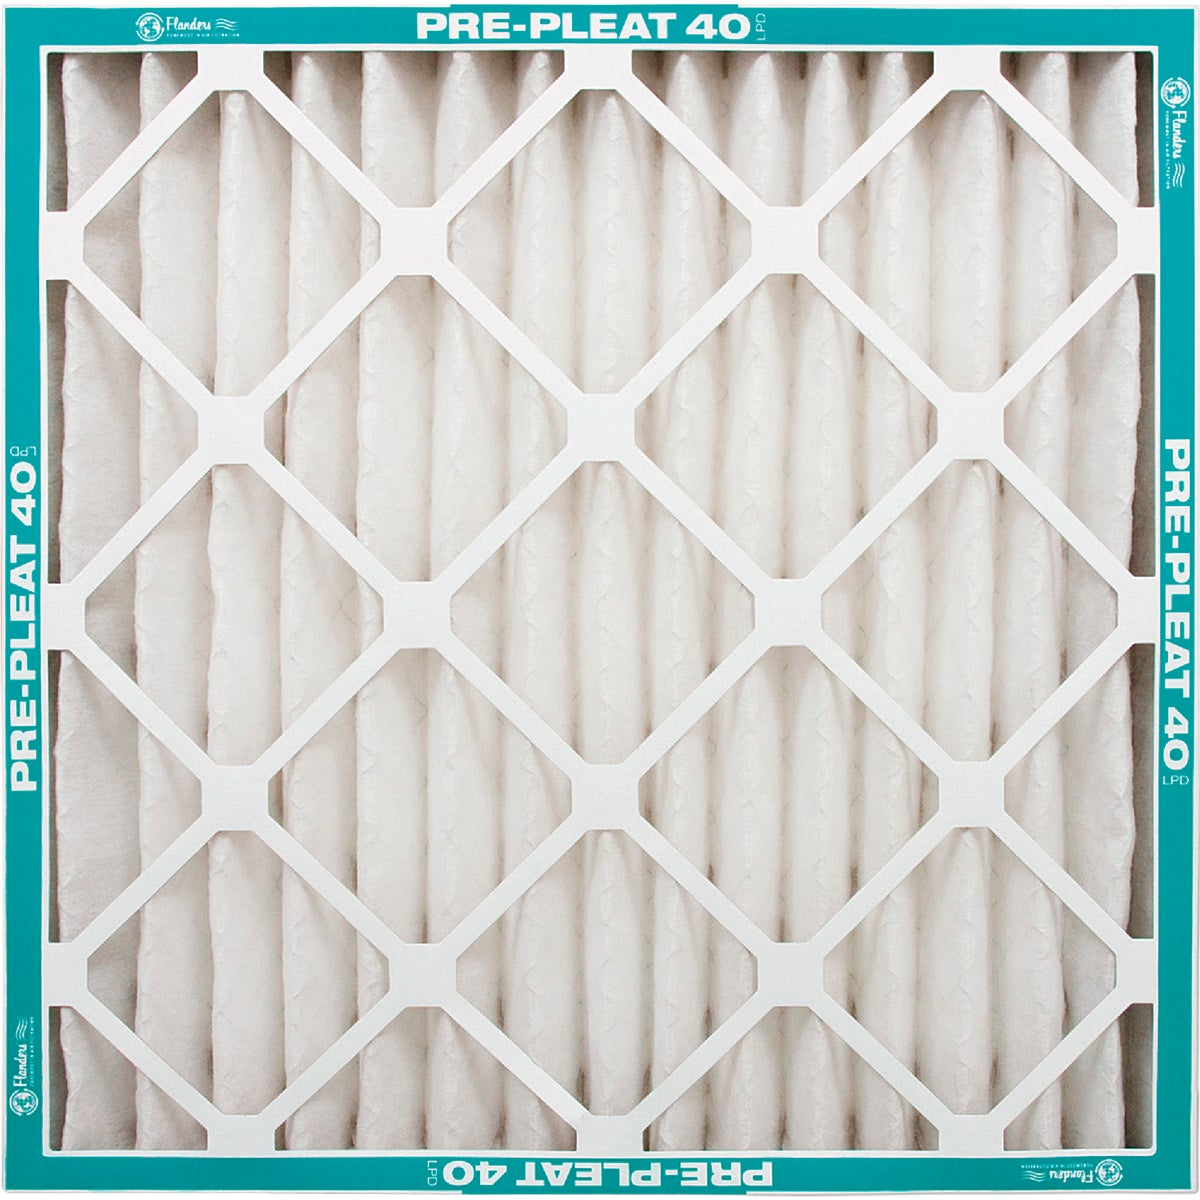 20X20X4 PLTD AIR FILTER - 80055.042020 by Flanders Corp